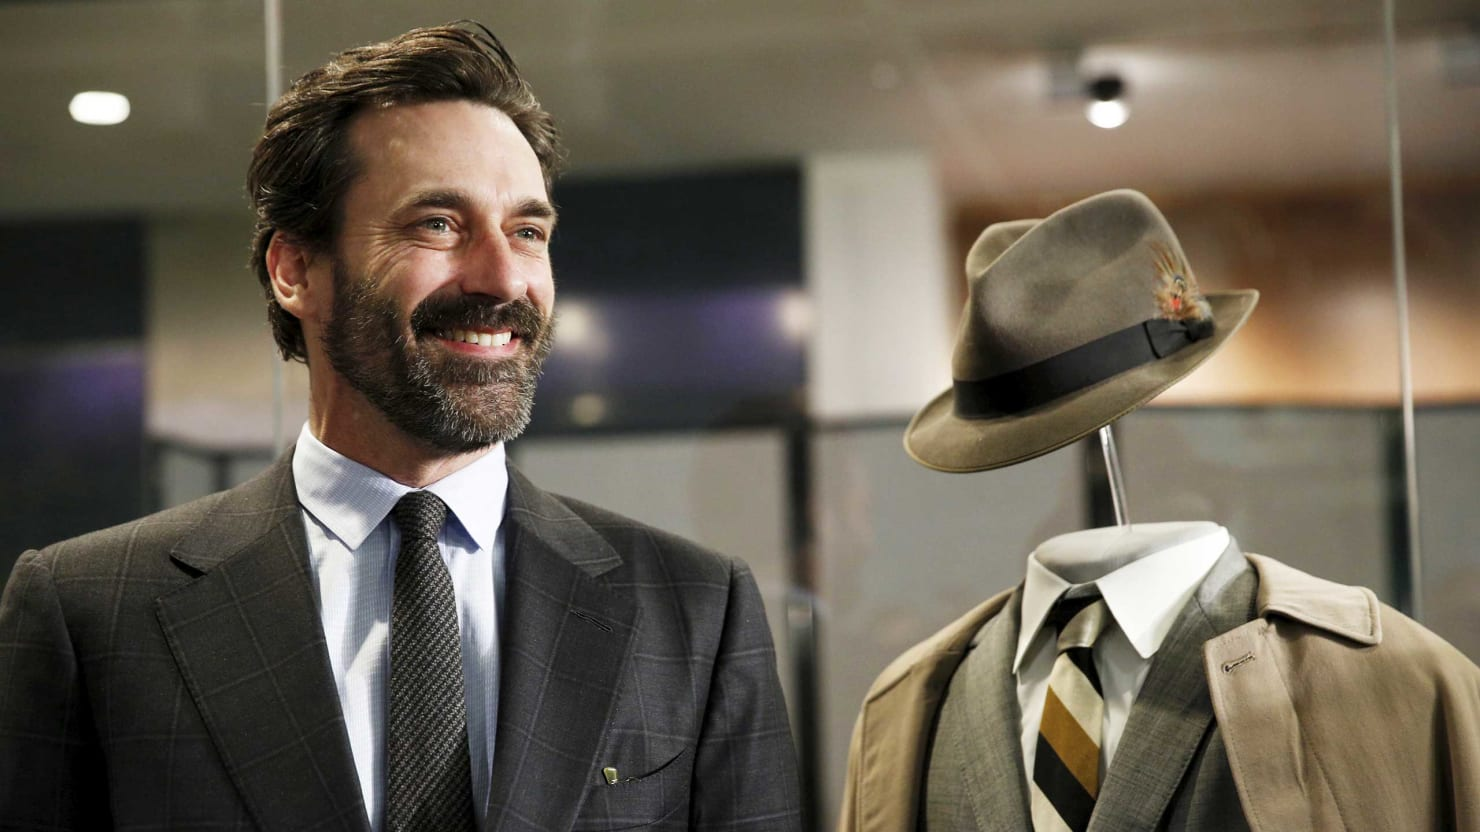 Its The End Of An Era As AMCs Hit Series Mad Men And Tormented Protagonist Don Draper Come To A Close Jon Hamm Reflects On His Iconic Ad Man